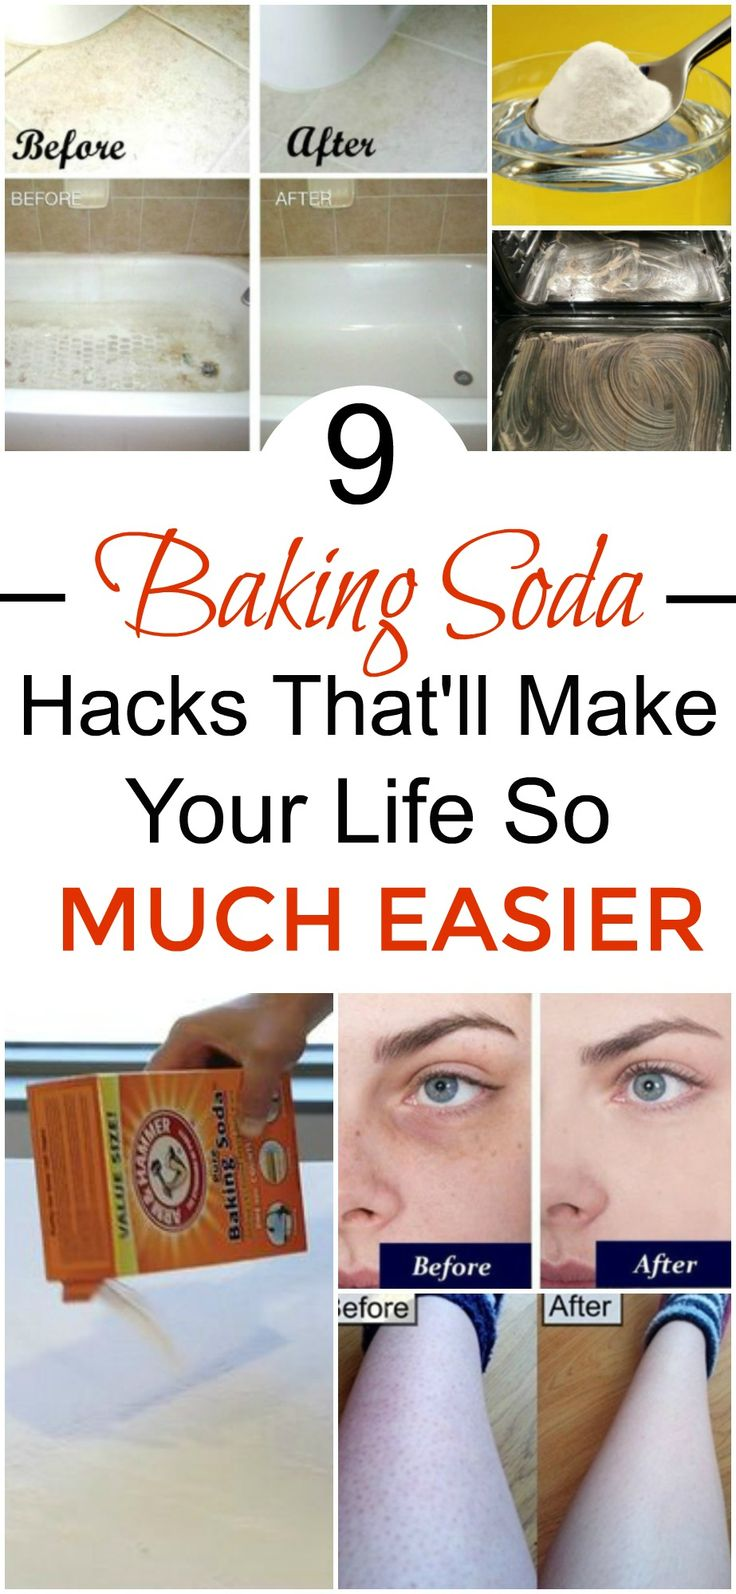 jessicaautumn.com 2017 04 07 9-baking-soda-hacks-that-you-need-to-know